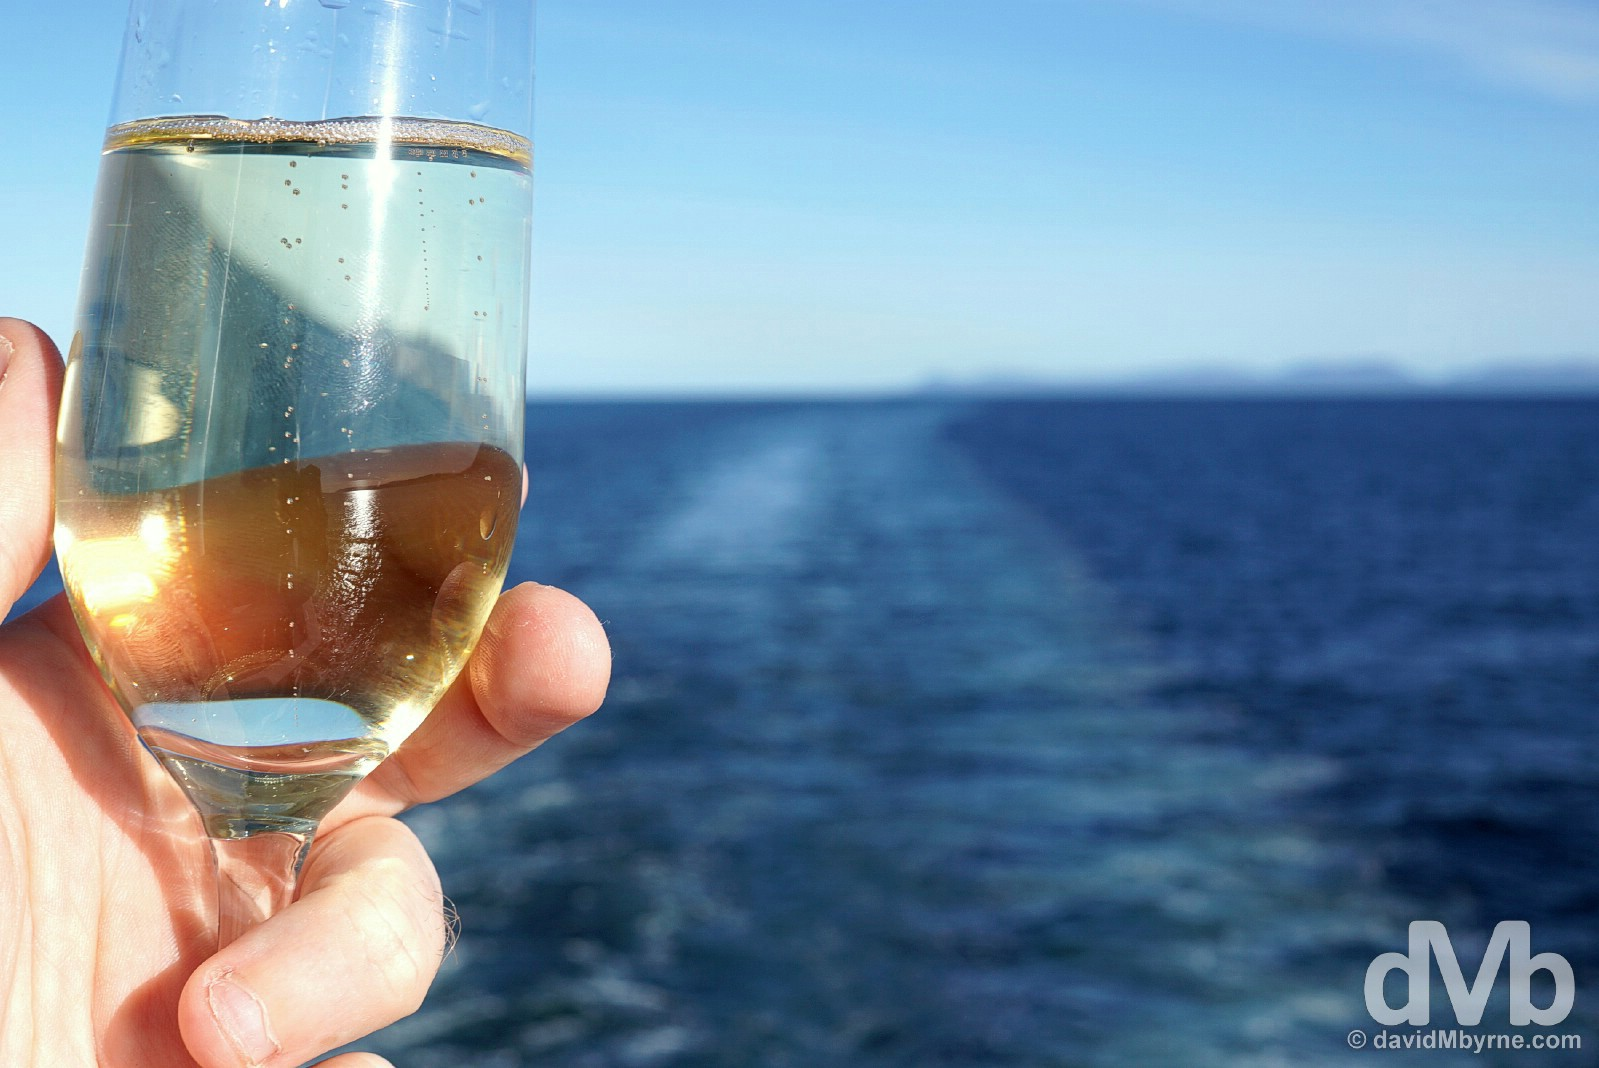 Welcome back champagne on the deck of the M/V Ocean Endeavour in the Beagle Channel. December 4, 2015.